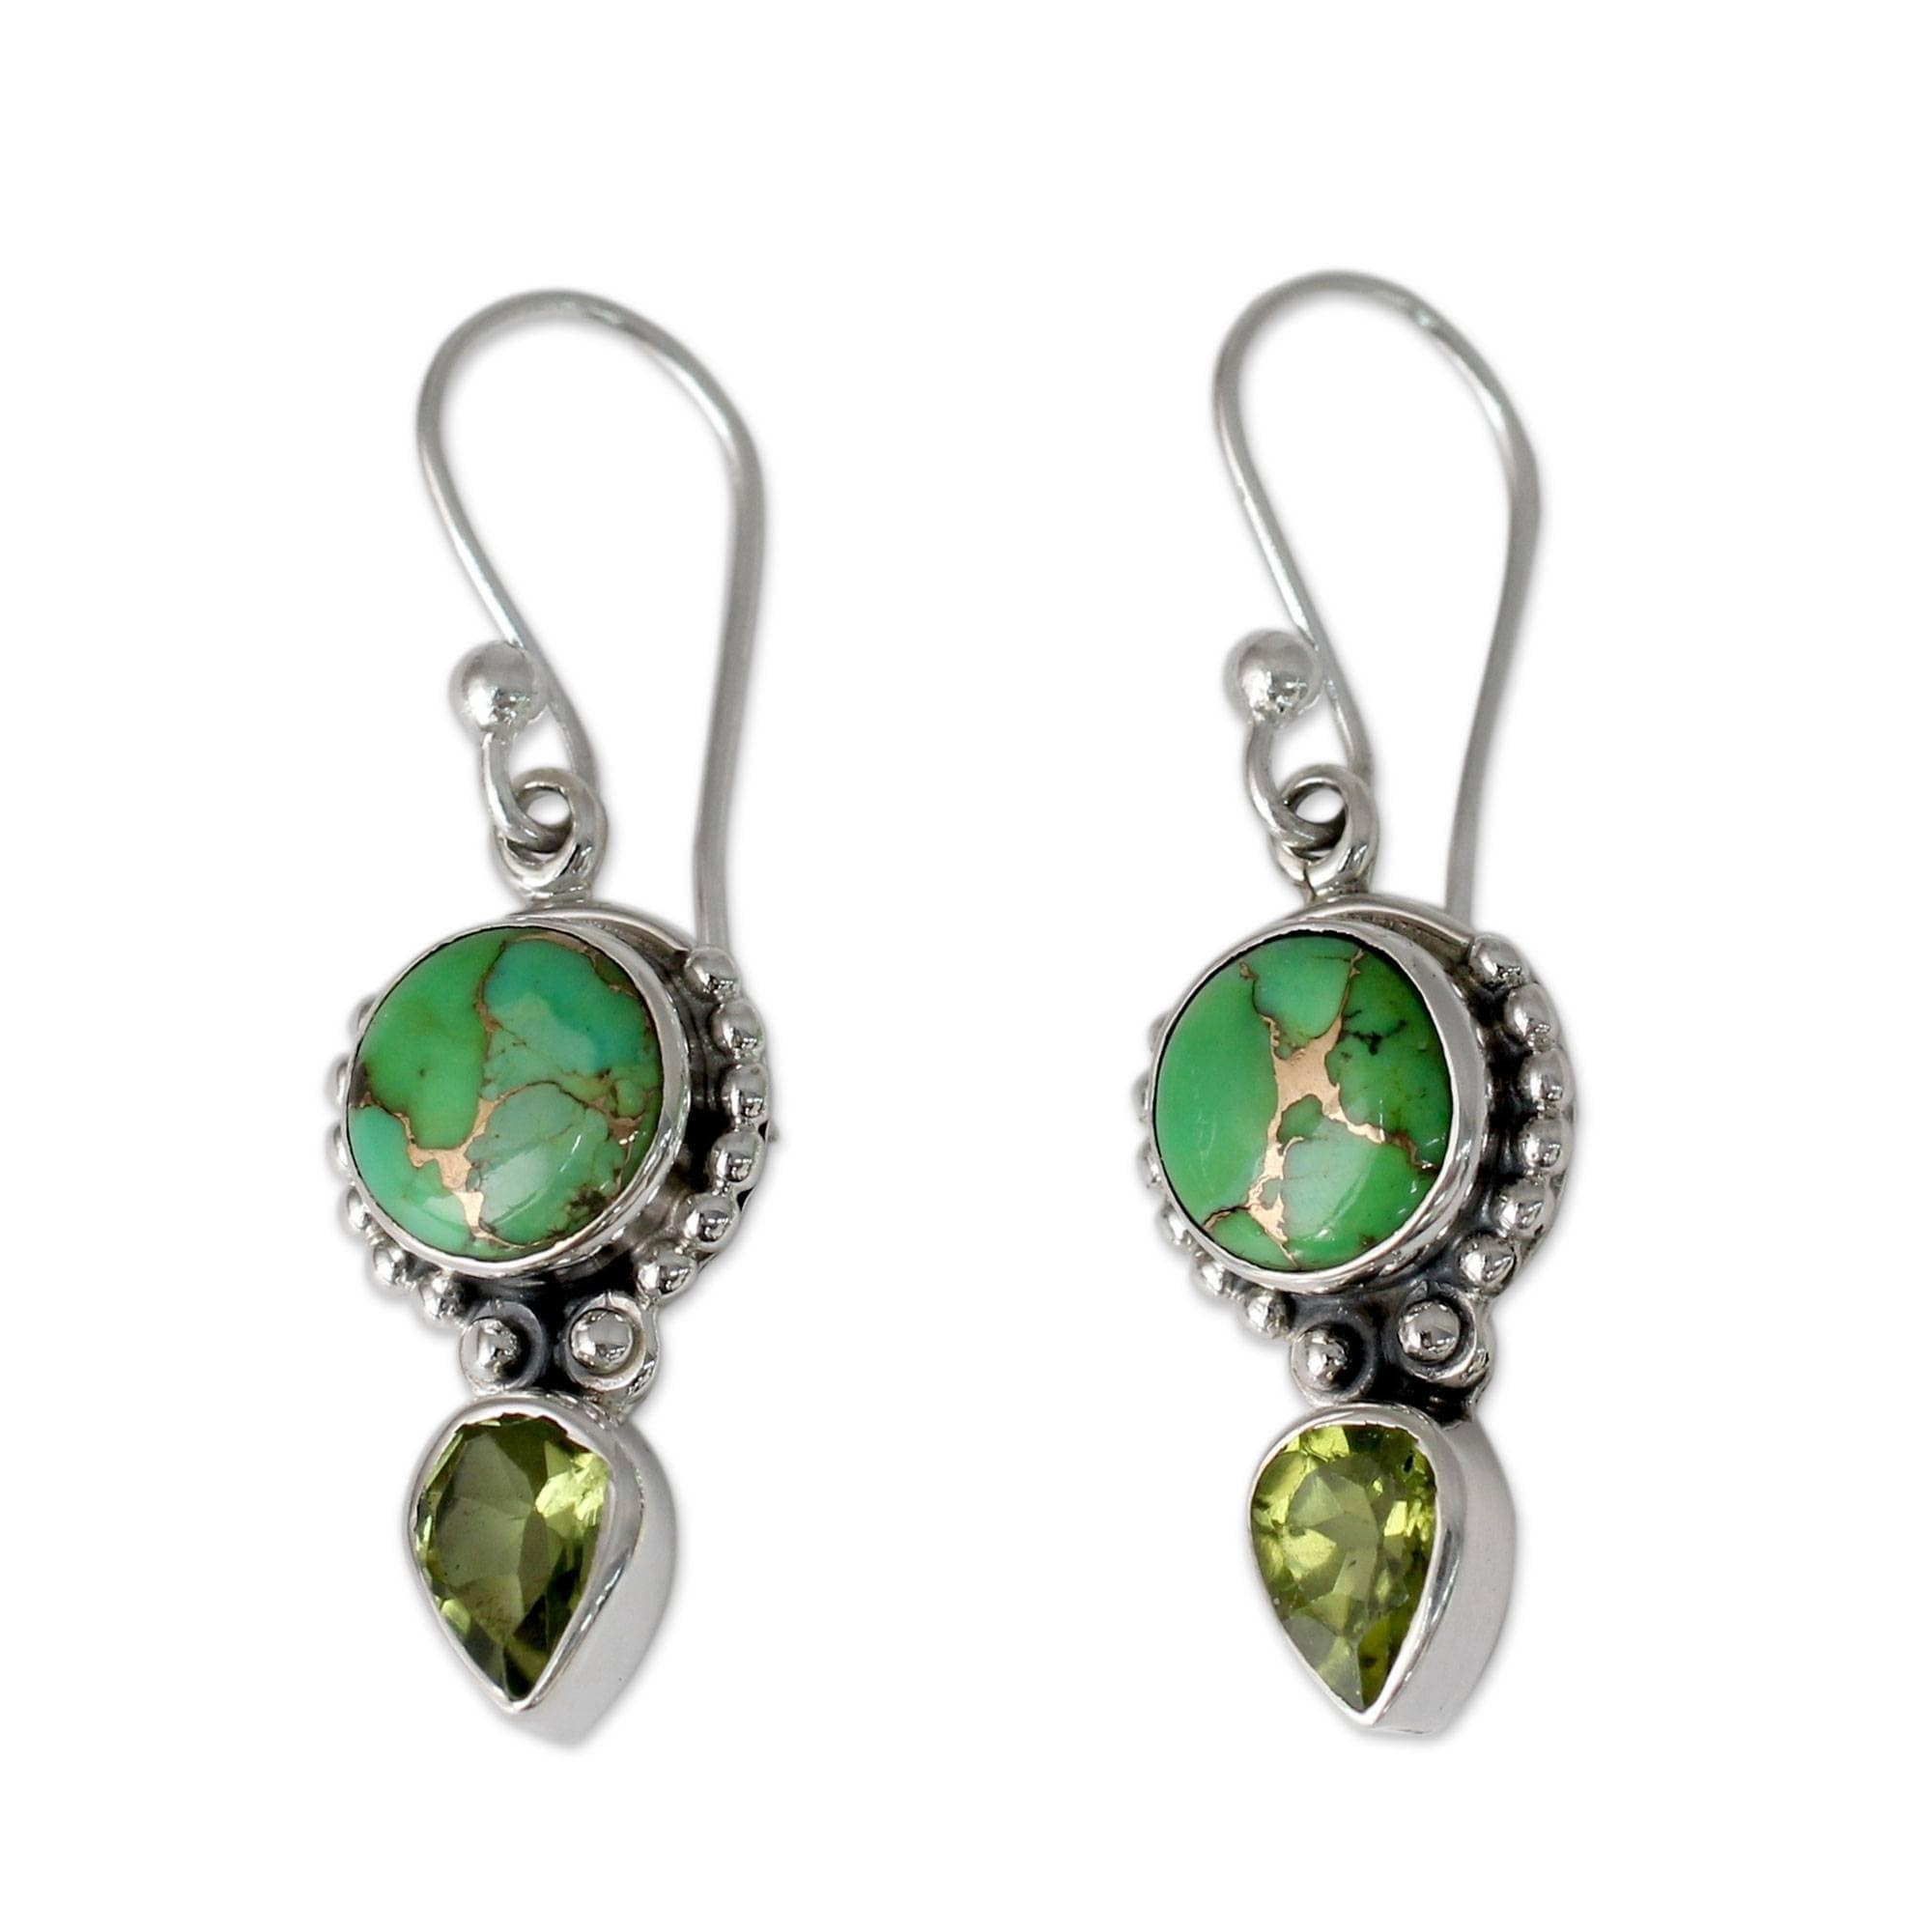 0dbce35a2 Handmade Sterling Silver Spring Green Peridot and Composite Turquoise  Earrings (India)